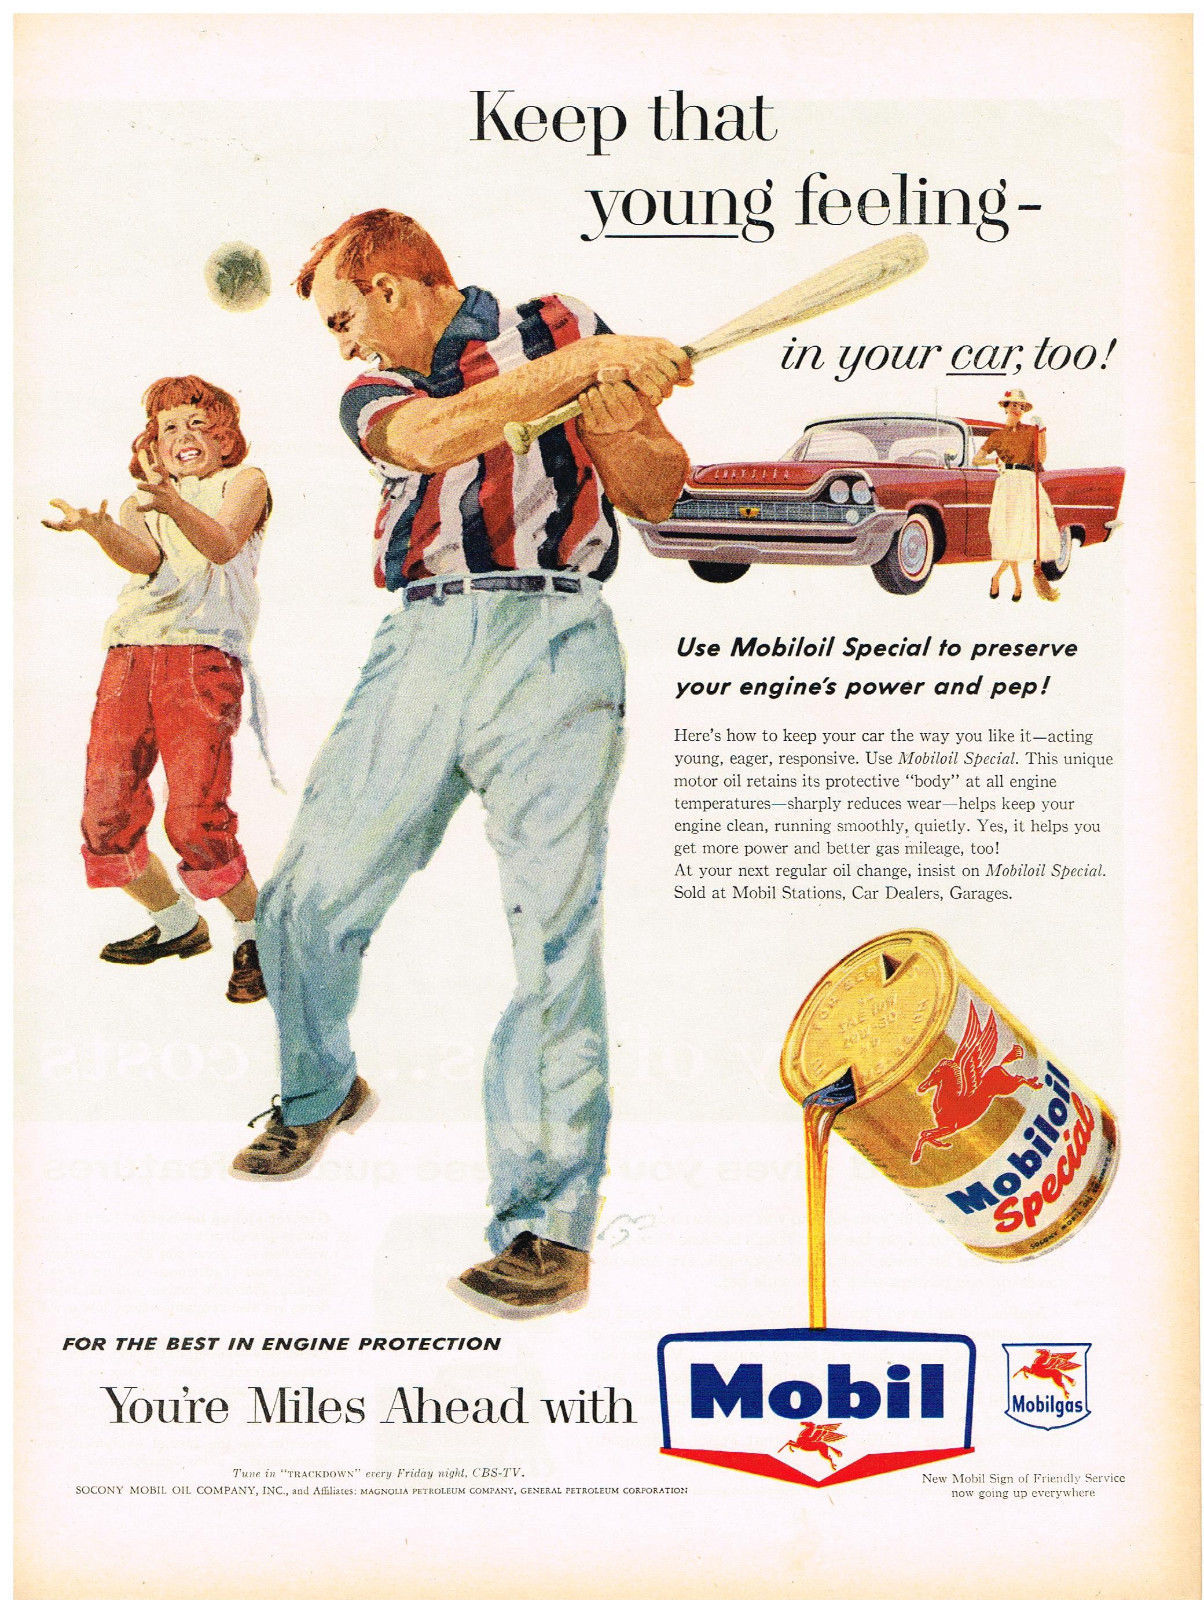 Collectibles Vintage 1940 Magazine Ad Mobiloil Special Use For The Best Engine Protection